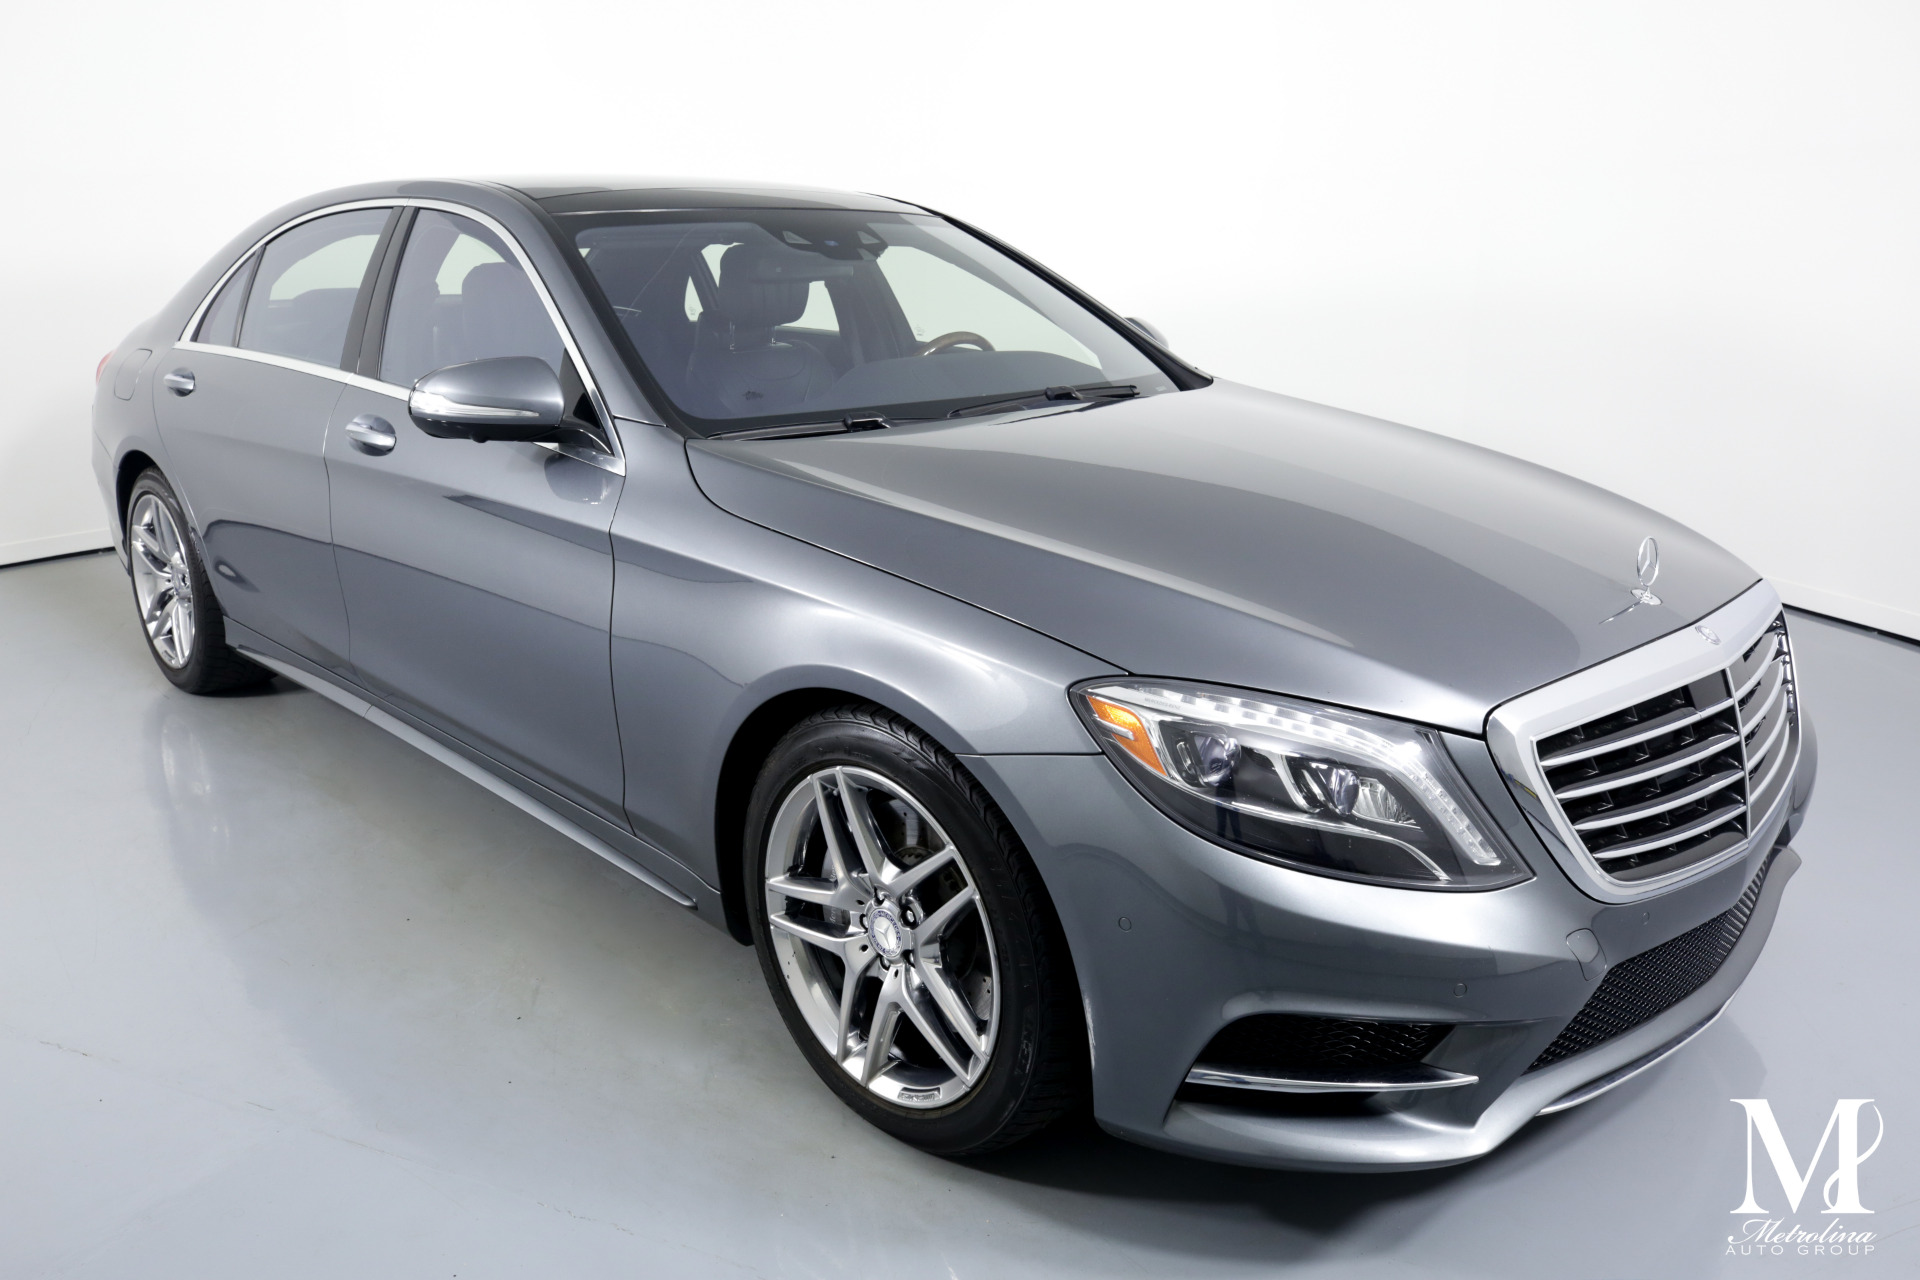 Used 2017 Mercedes-Benz S-Class S 550 4MATIC AWD 4dr Sedan for sale Sold at Metrolina Auto Group in Charlotte NC 28217 - 2